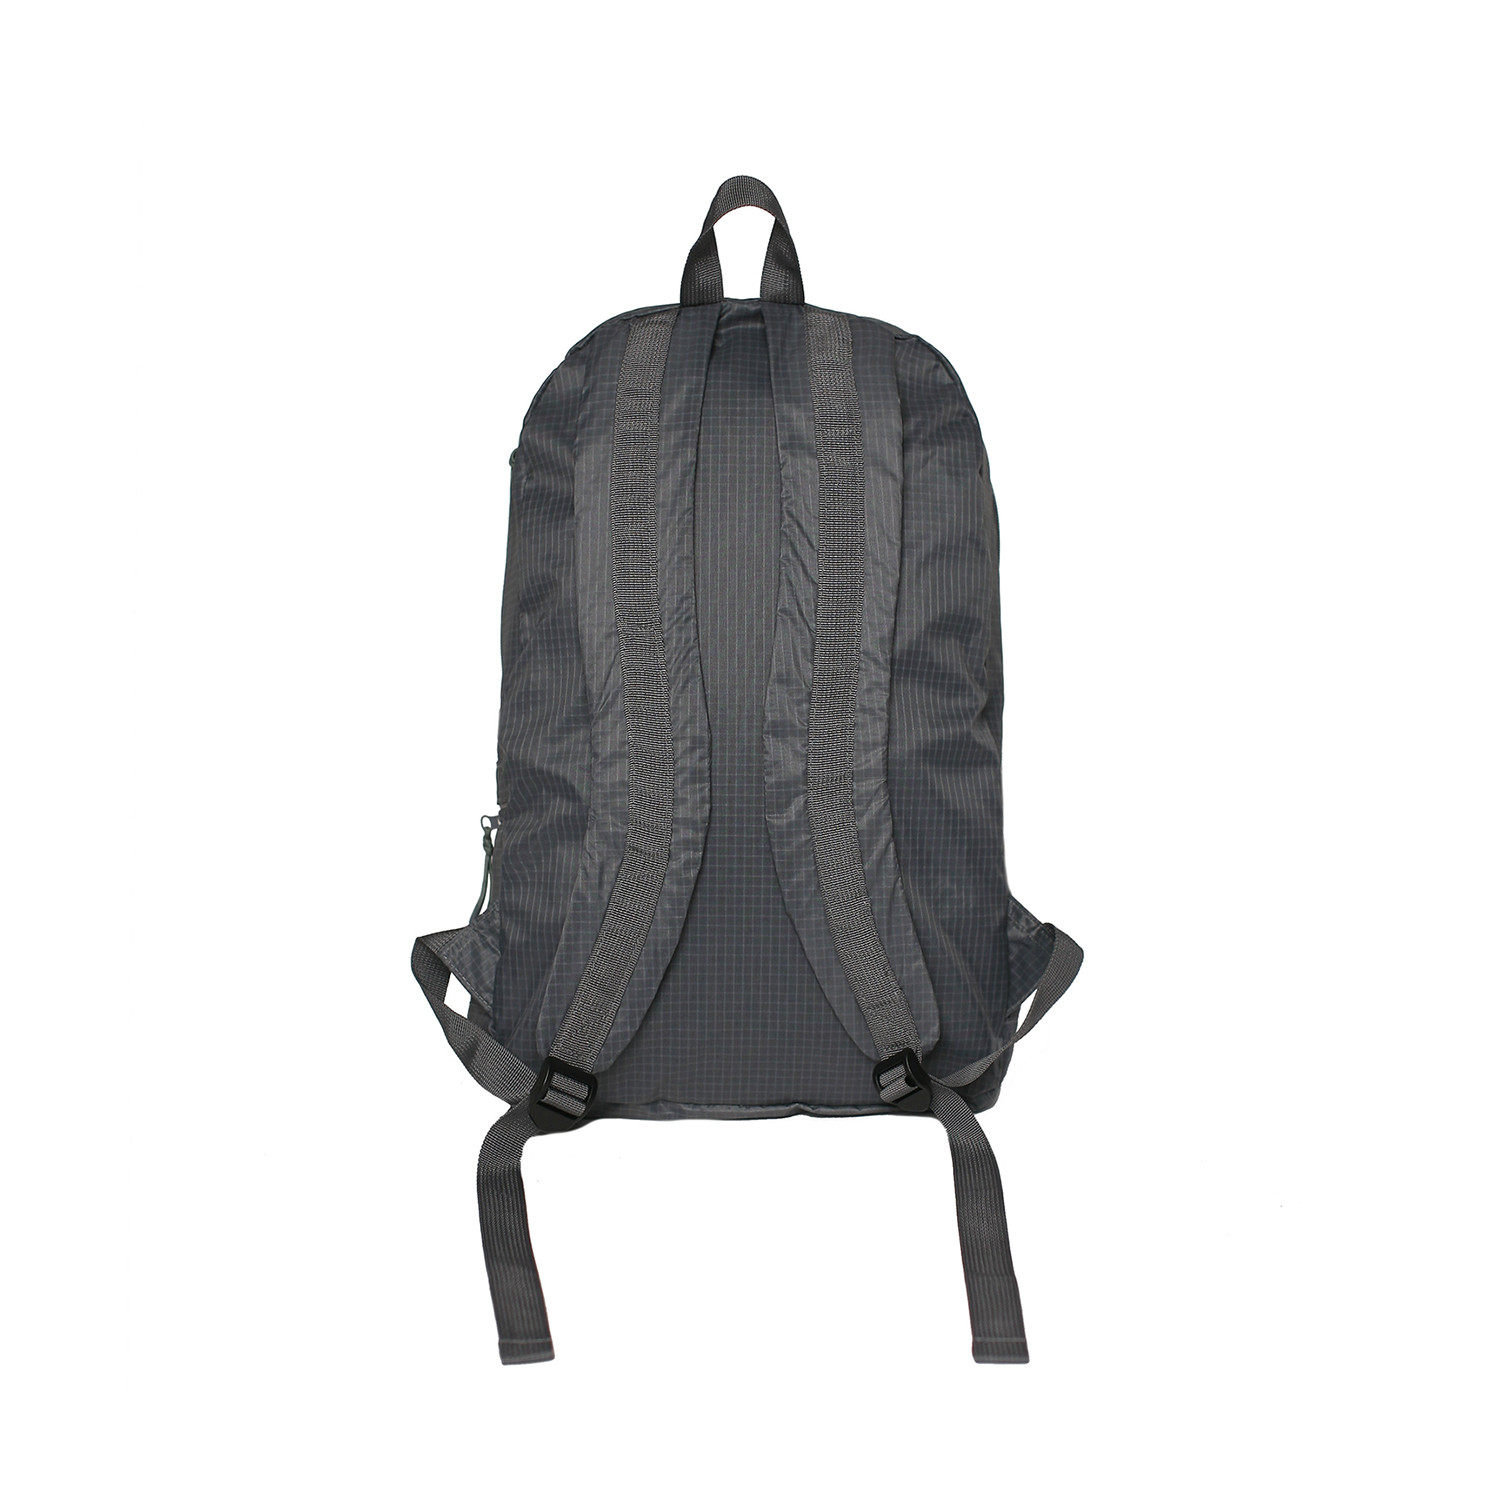 23afc43d16 NCT Nano Packable Backpack    Asphalt - Imperial Motion - Touch of ...